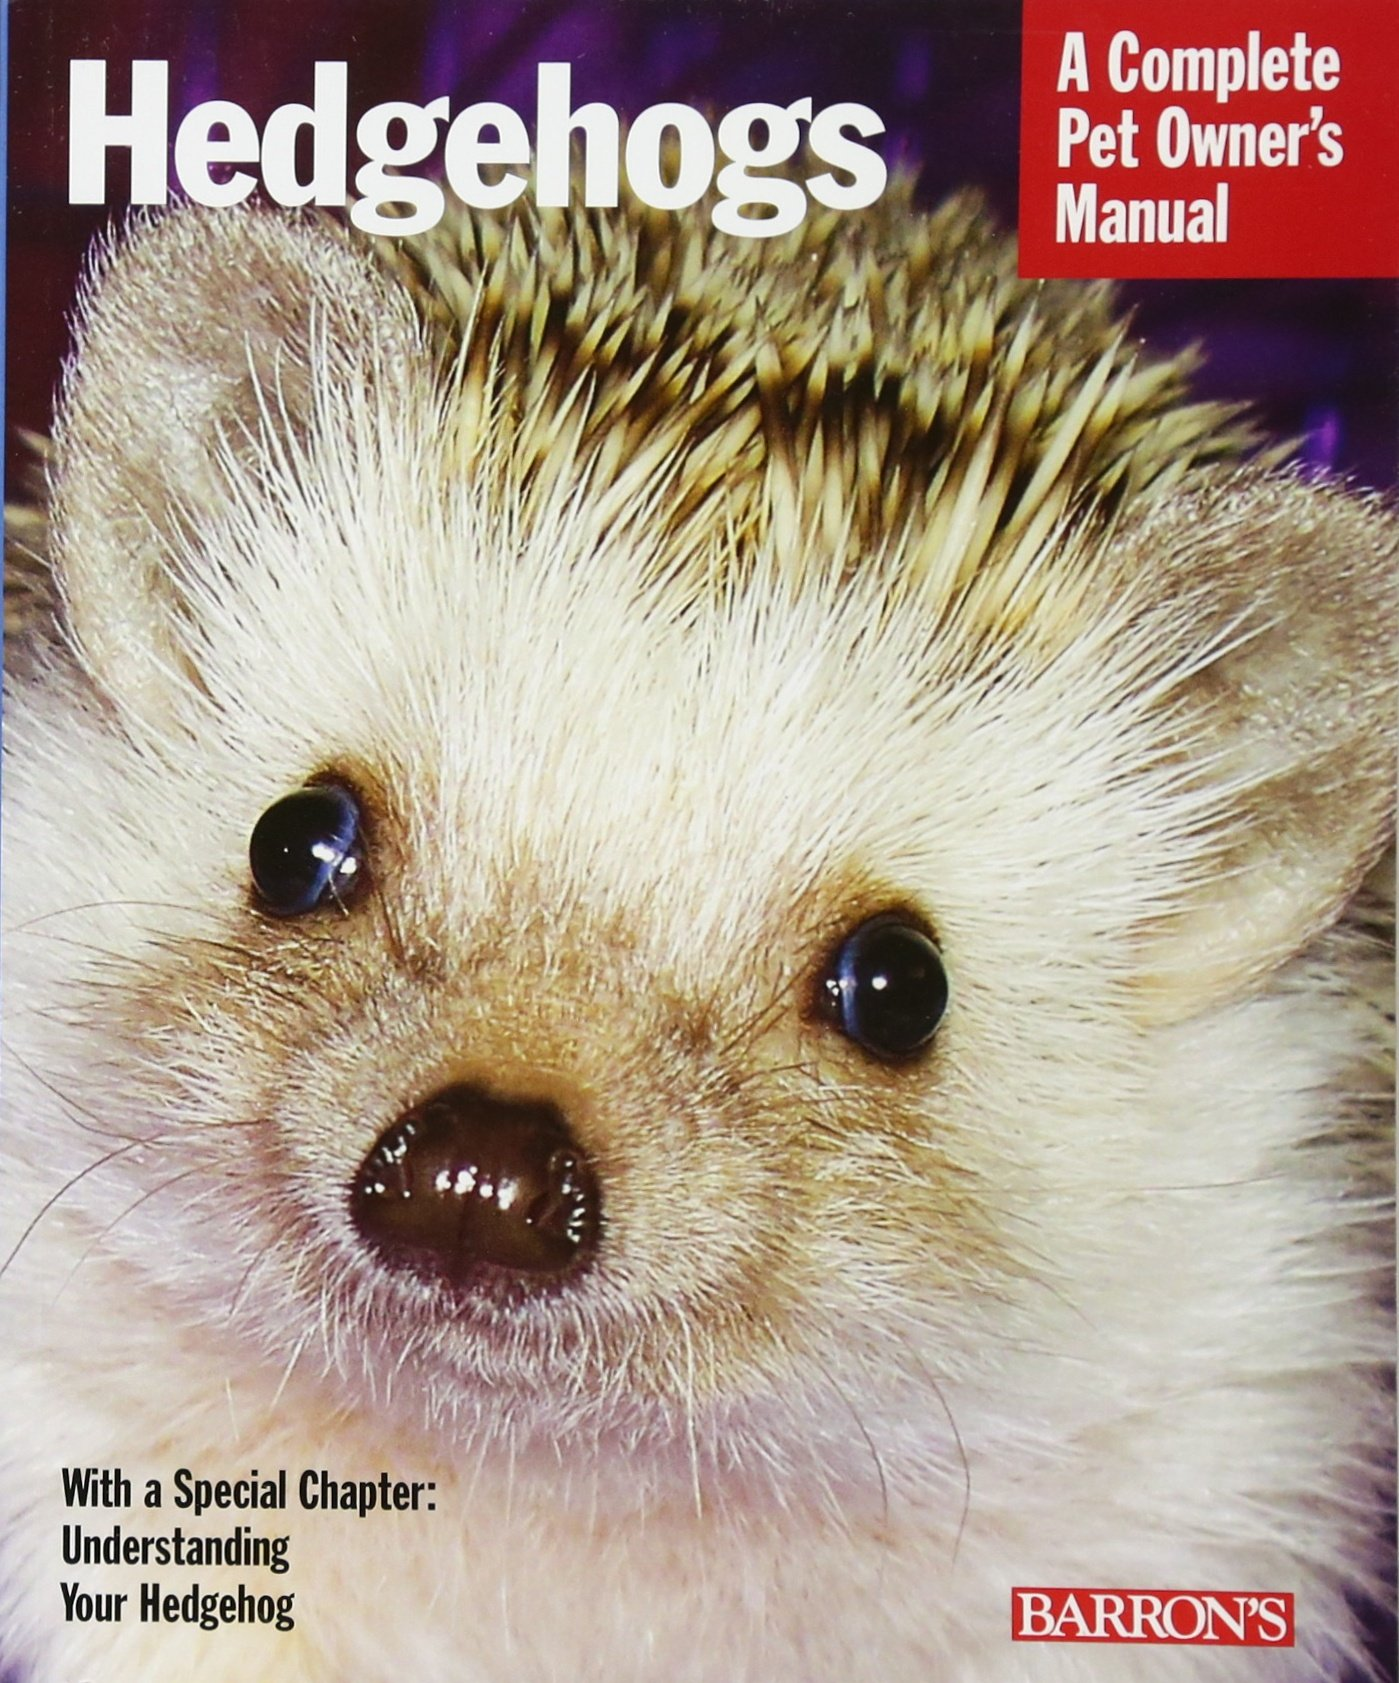 Hedgehogs (Complete Pet Owner's Manuals): Sharon Vanderlip D.V.M.:  9780764144394: Amazon.com: Books